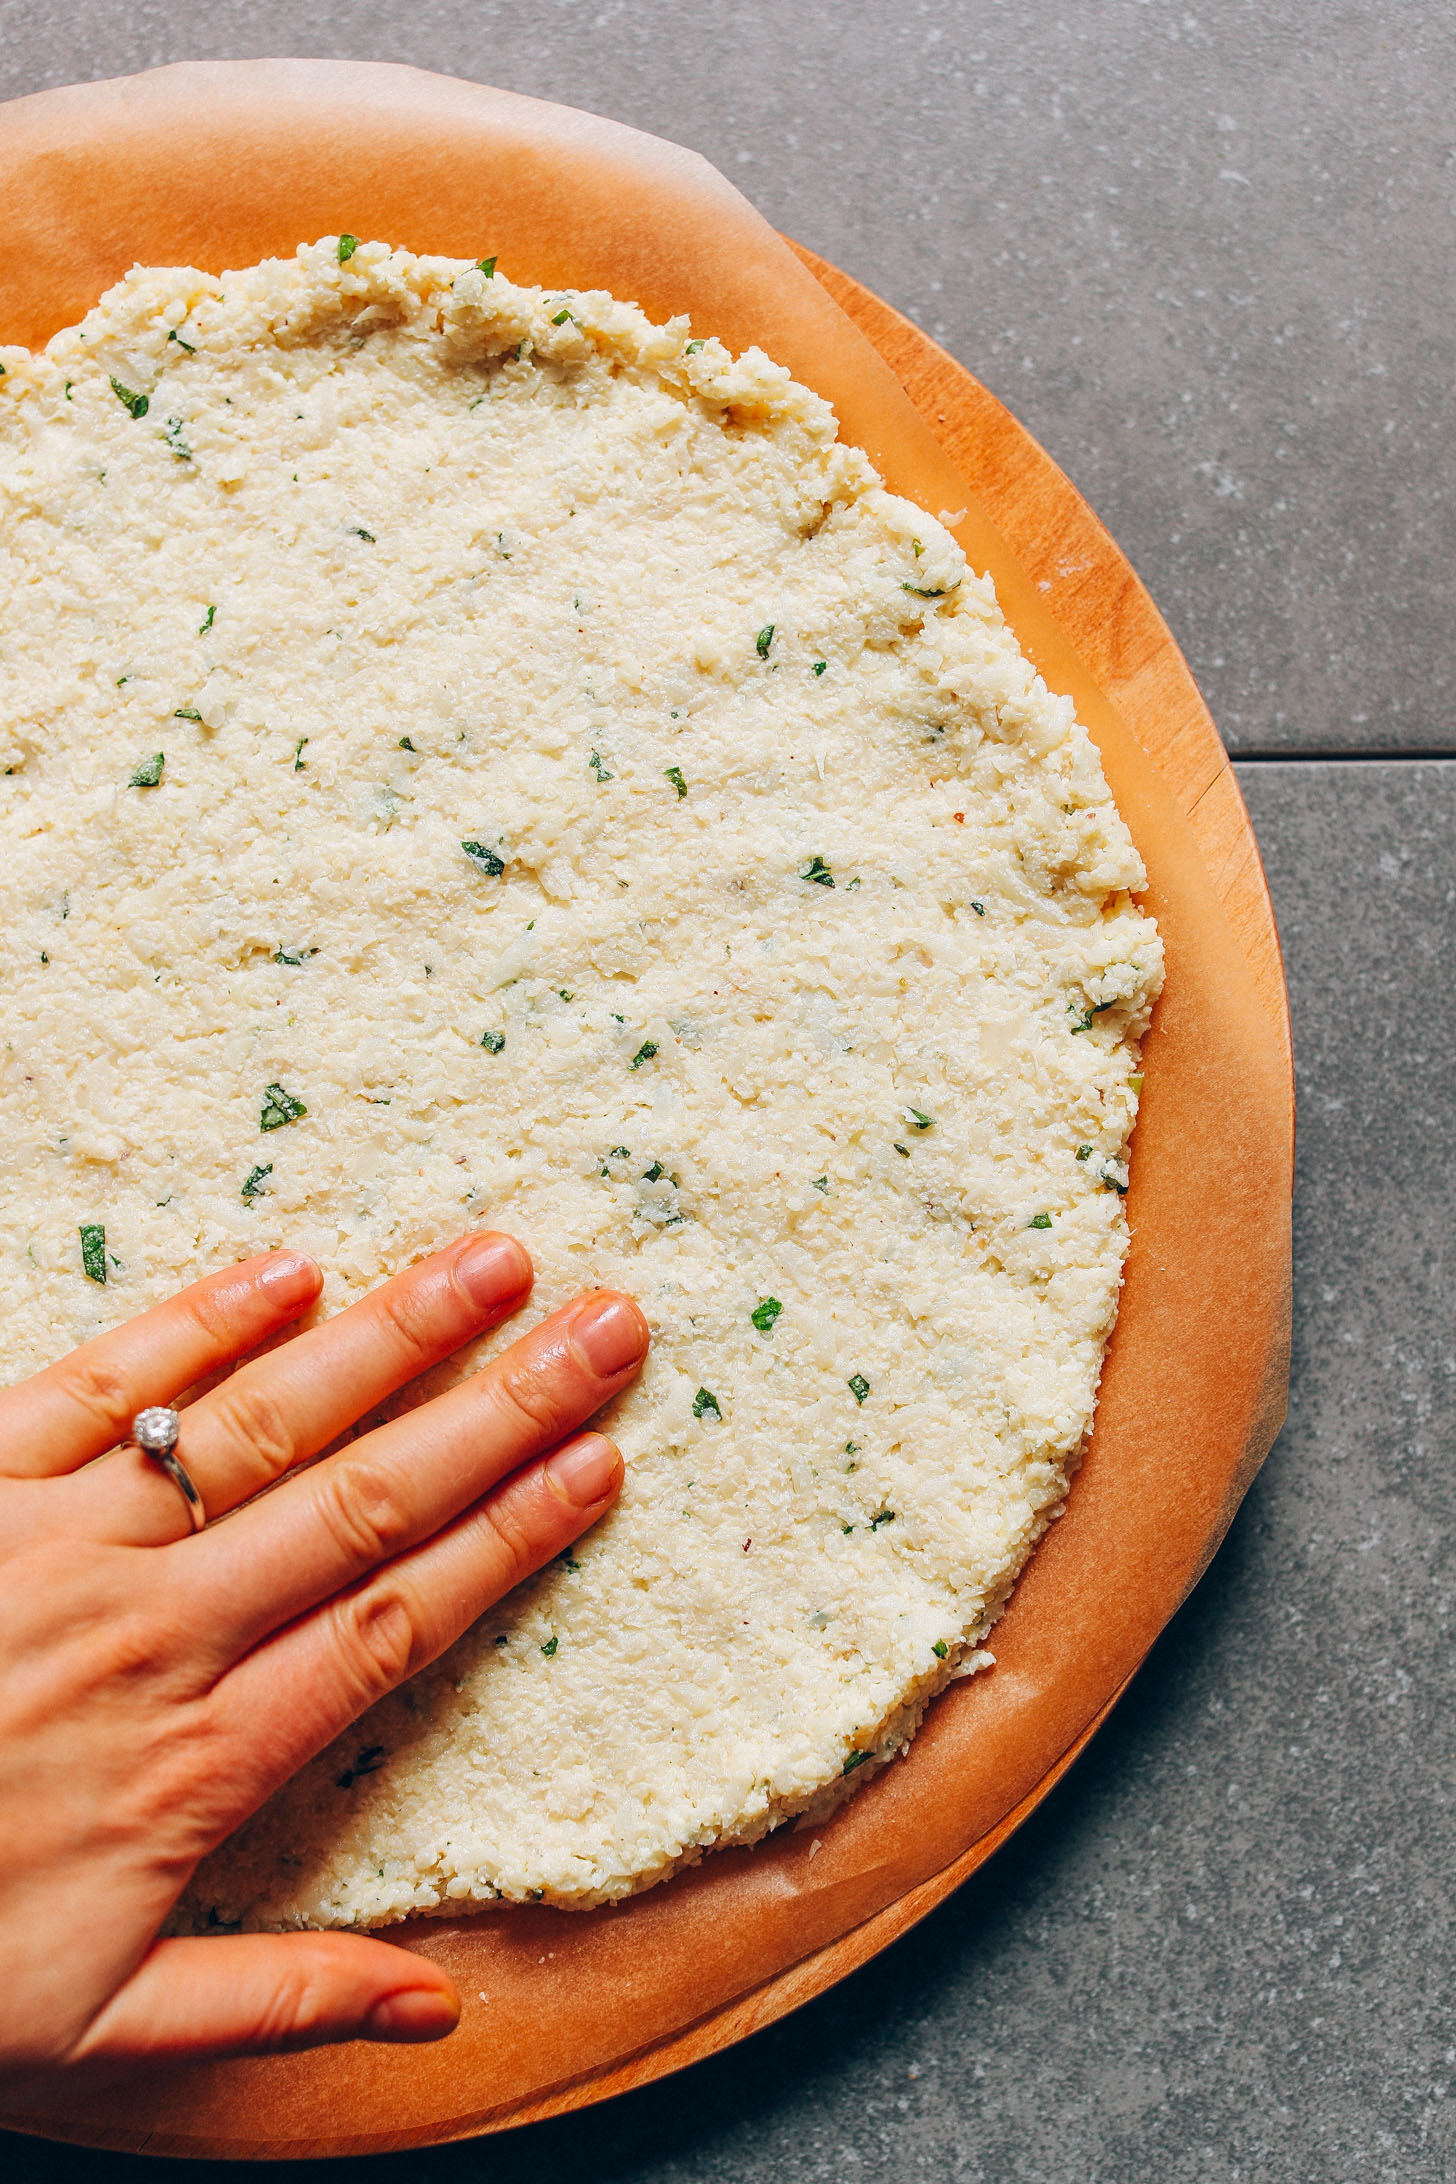 Pressing on a cauliflower pizza crust to flatten it